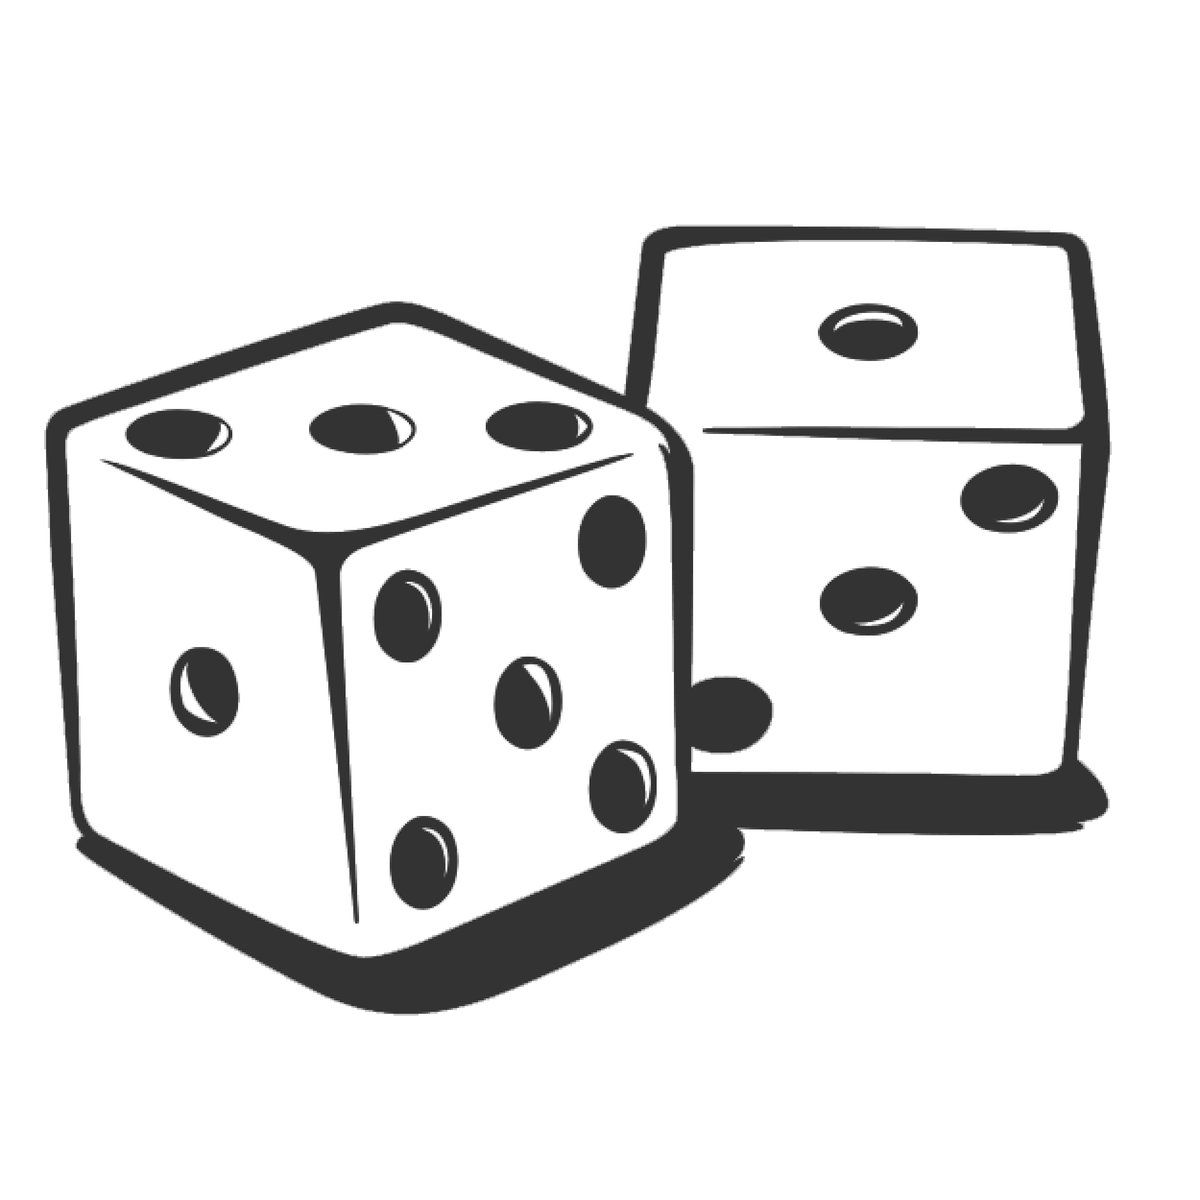 Gaming clipart roll dice. Frames illustrations hd